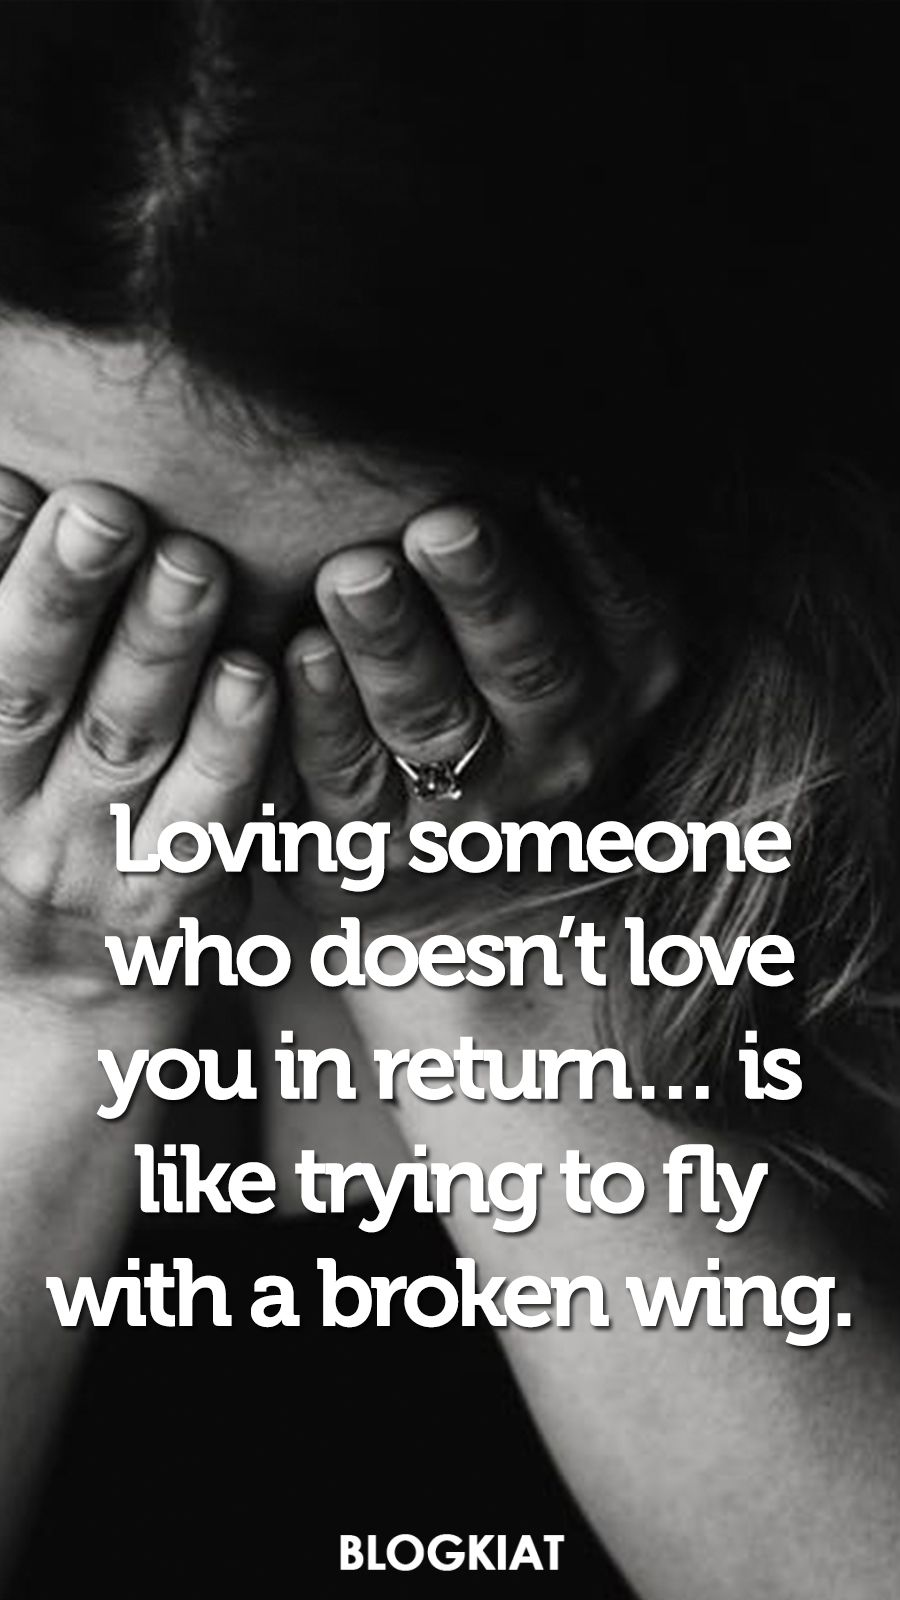 Image of: Romantic 50 Heart Touching One Sided Love Quotes For Himher lovequotes onesidedlovequotes onesidelove onesidelovesayings onesidedlovemessages Hearttouching Pinterest Best One Sided Love Quotes Quotes Pinterest Love Quotes